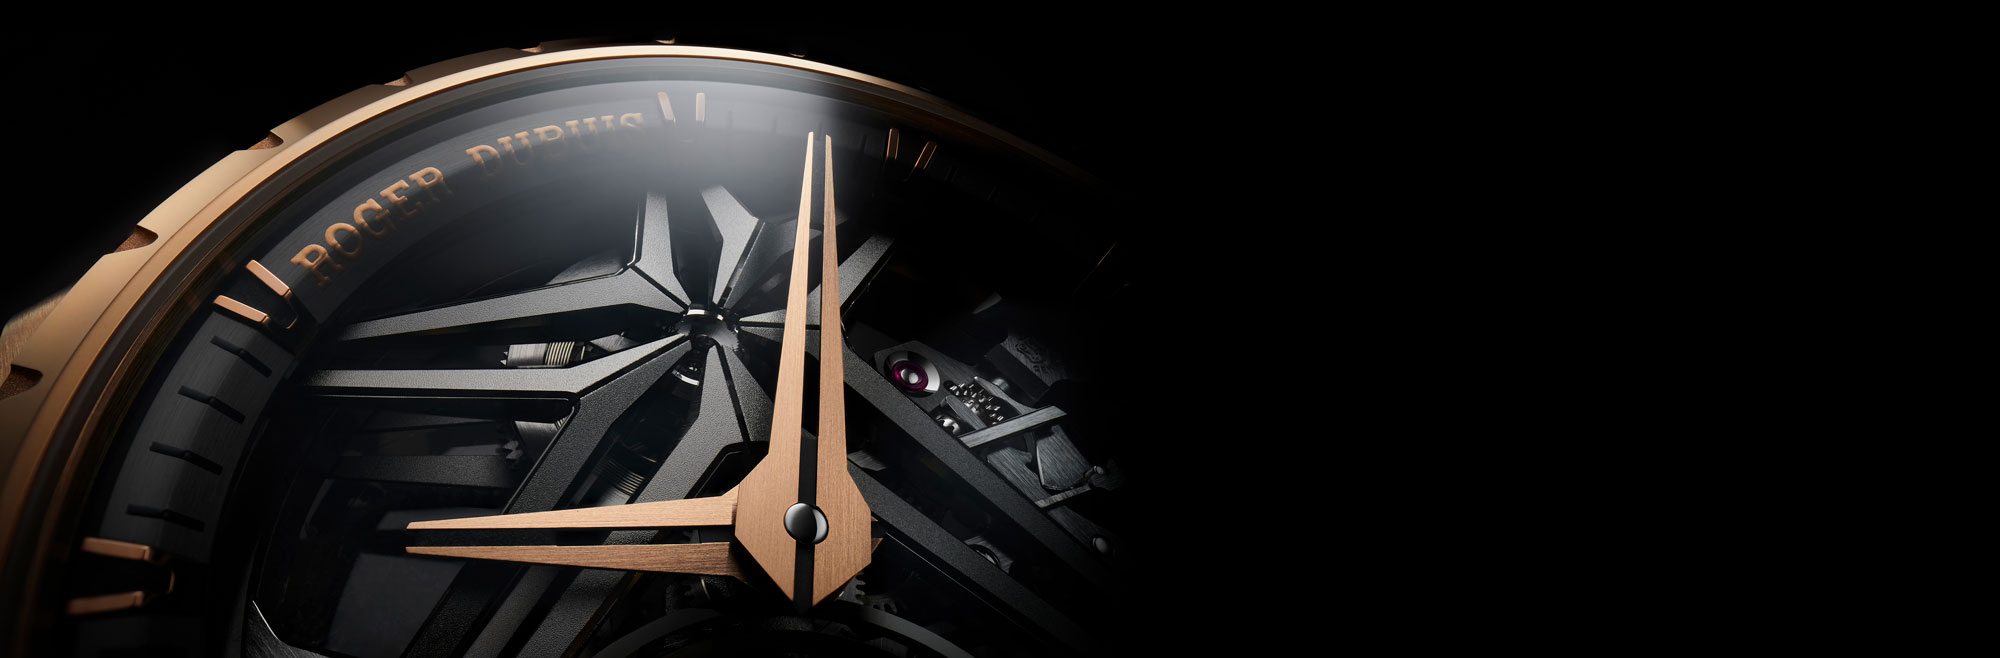 Watches & Wonders Roger Dubuis